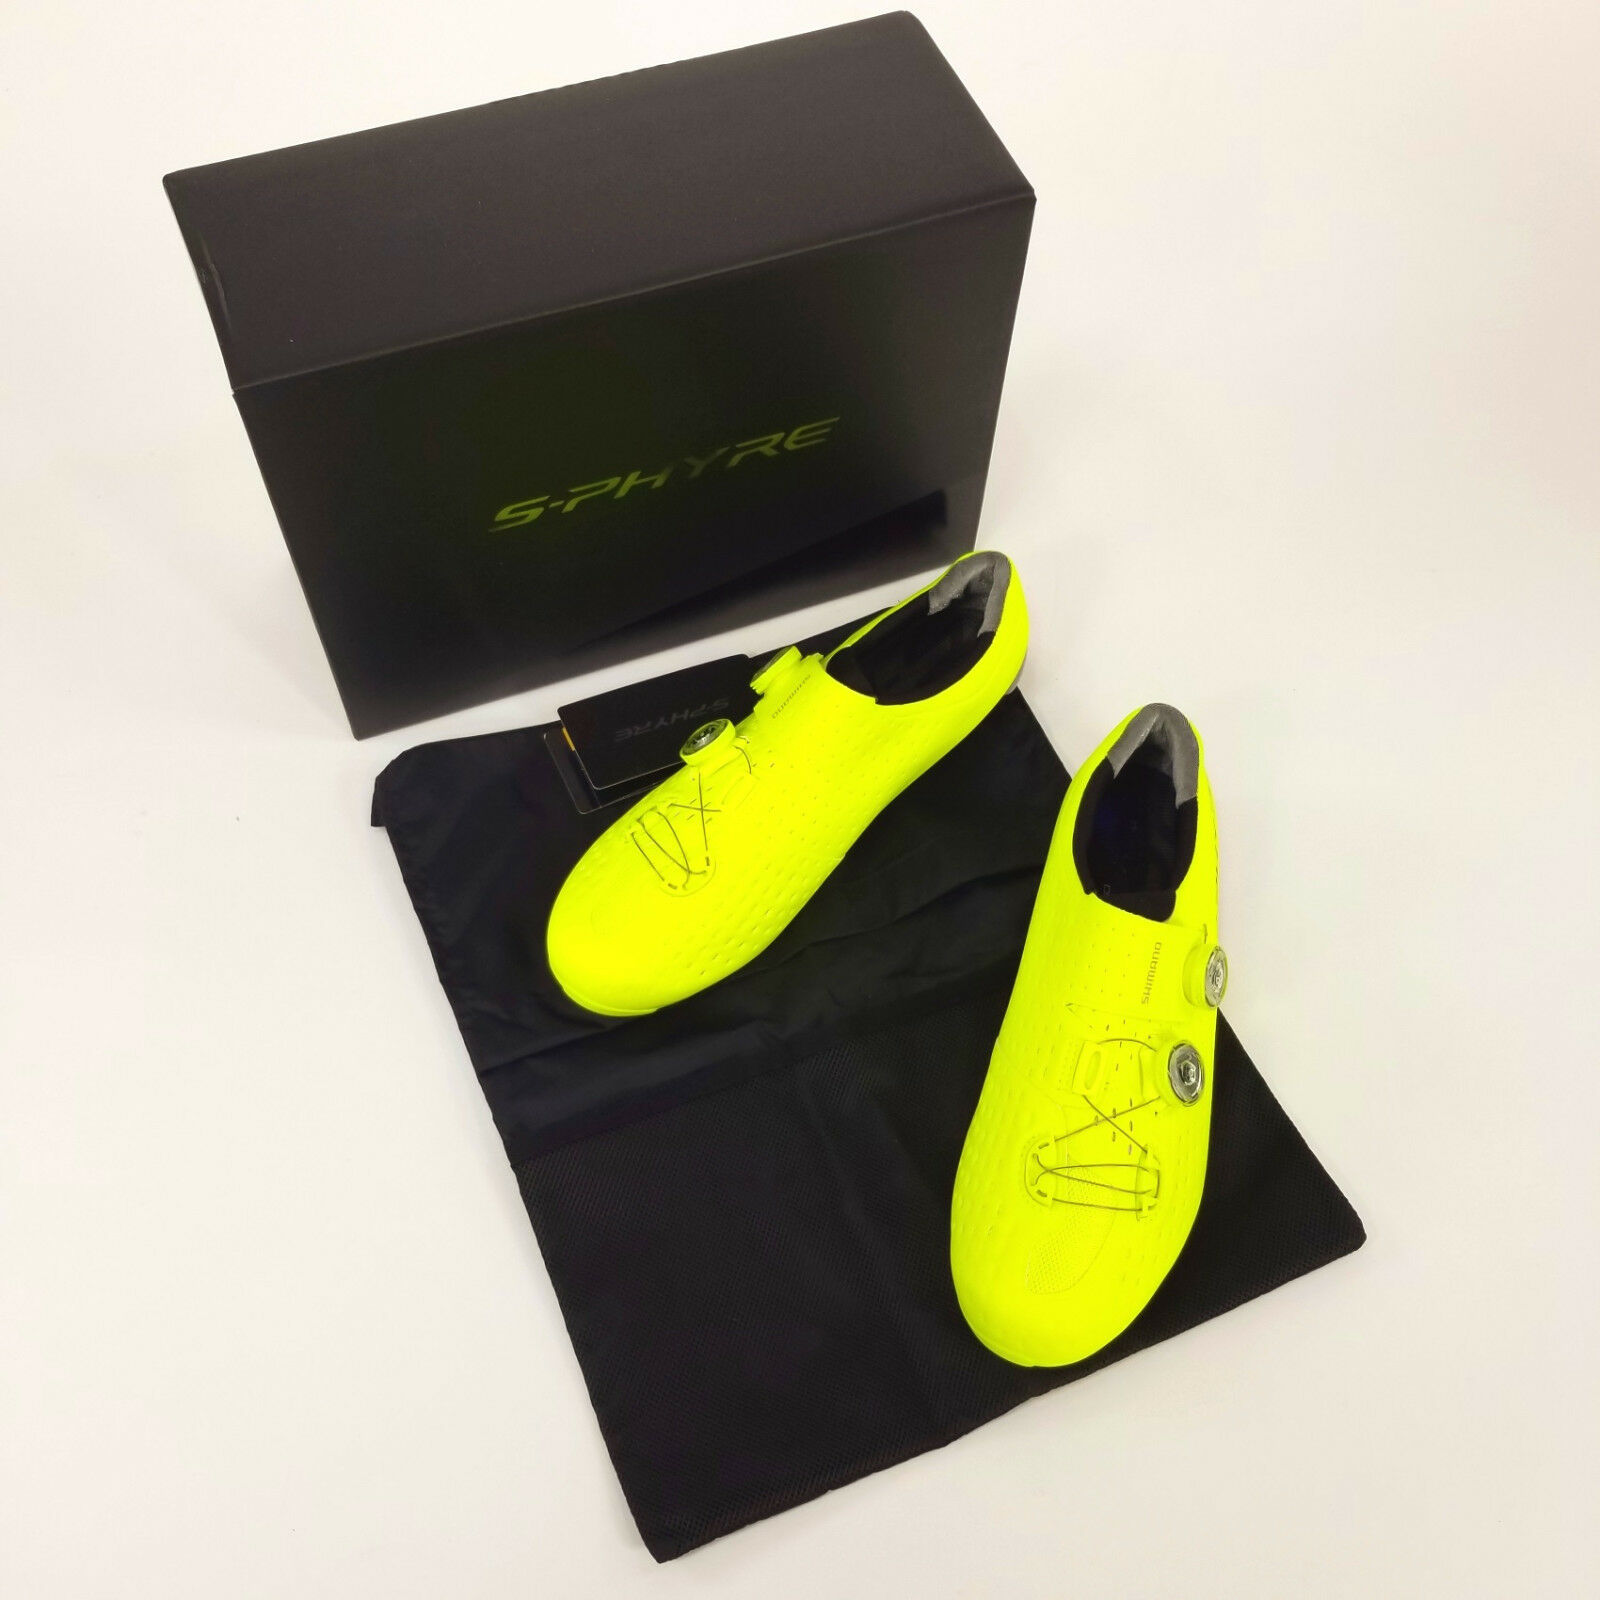 Shimano RC9Y S-Phyre Road Bike shoes, Yellow, US 5.2